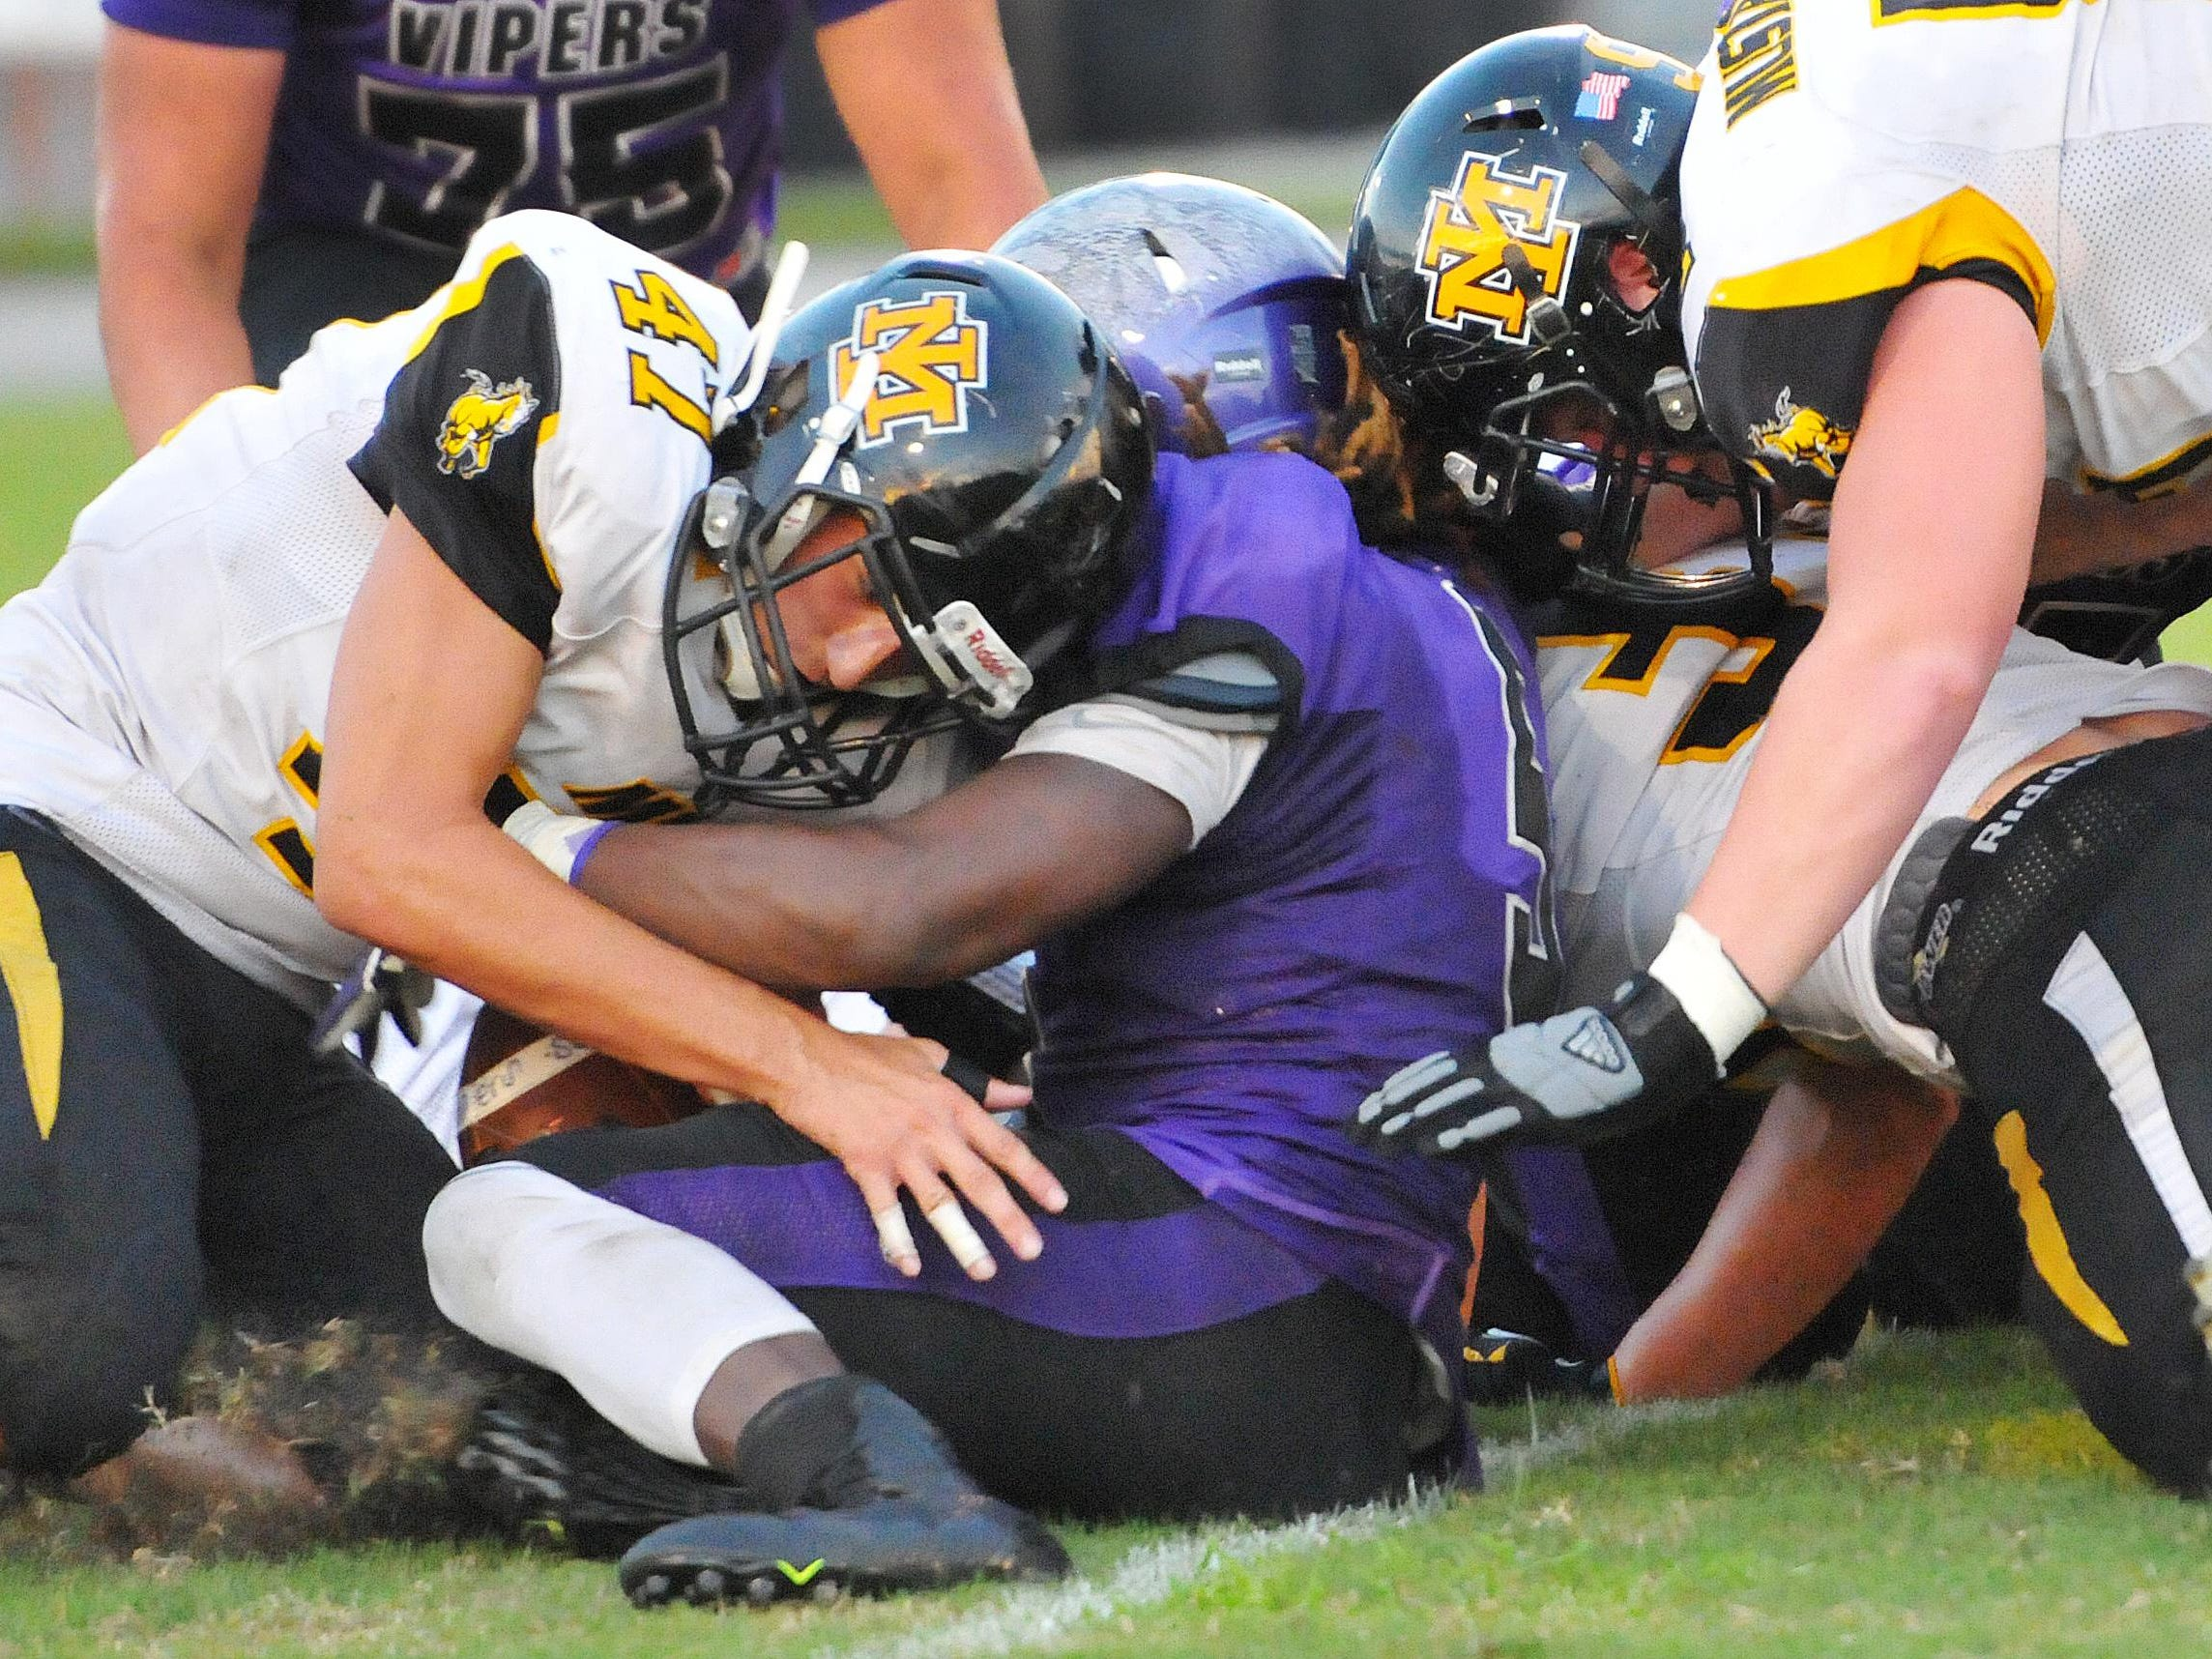 Merritt Island and Space Coast met earlier this season in Port St. John, and both play Thursday games this week.